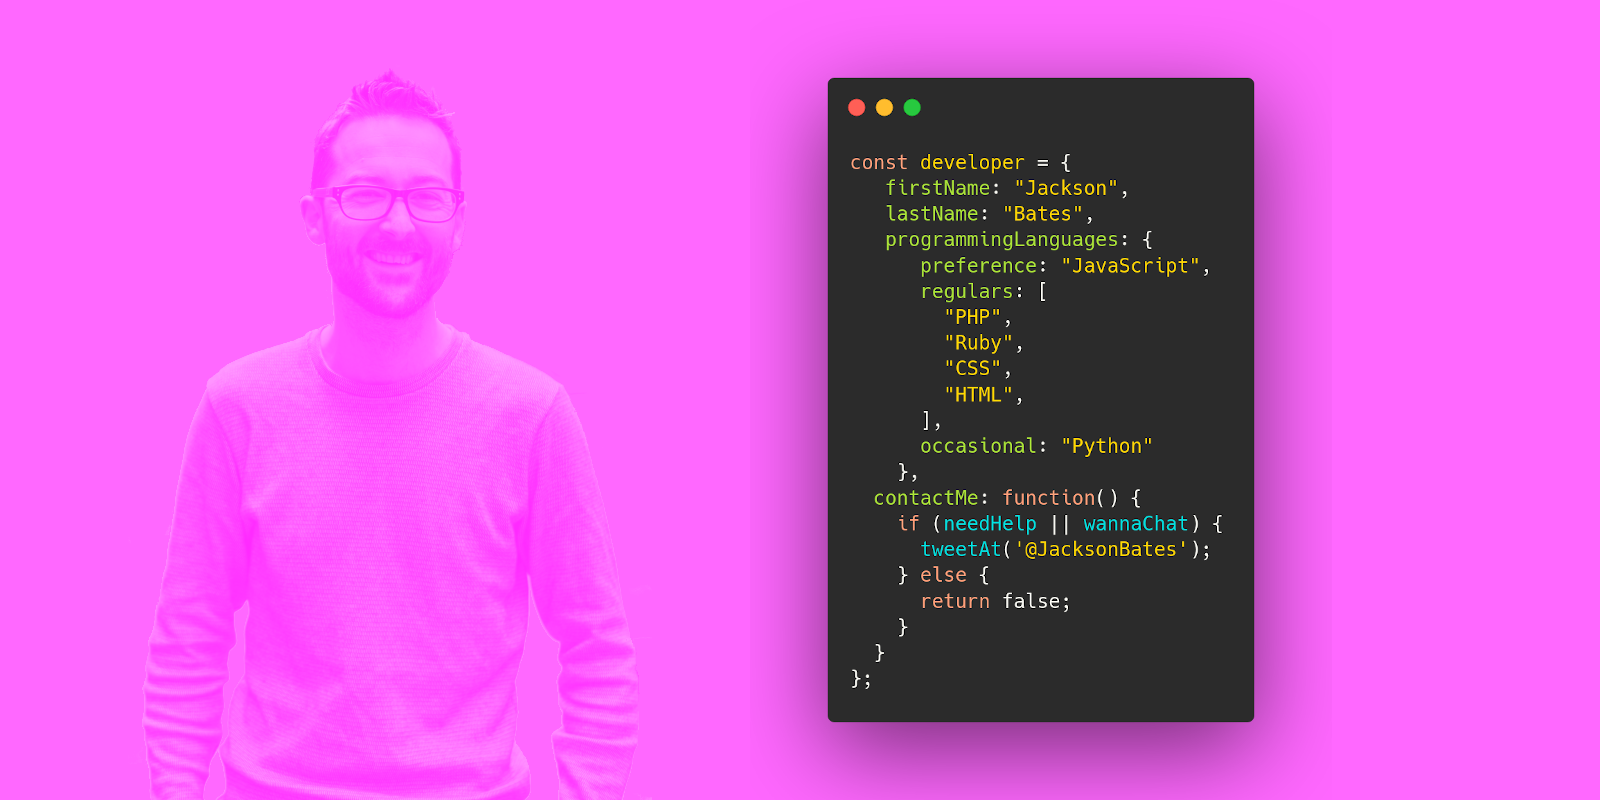 Jackson Bates is a software developer specialising in JavaScript